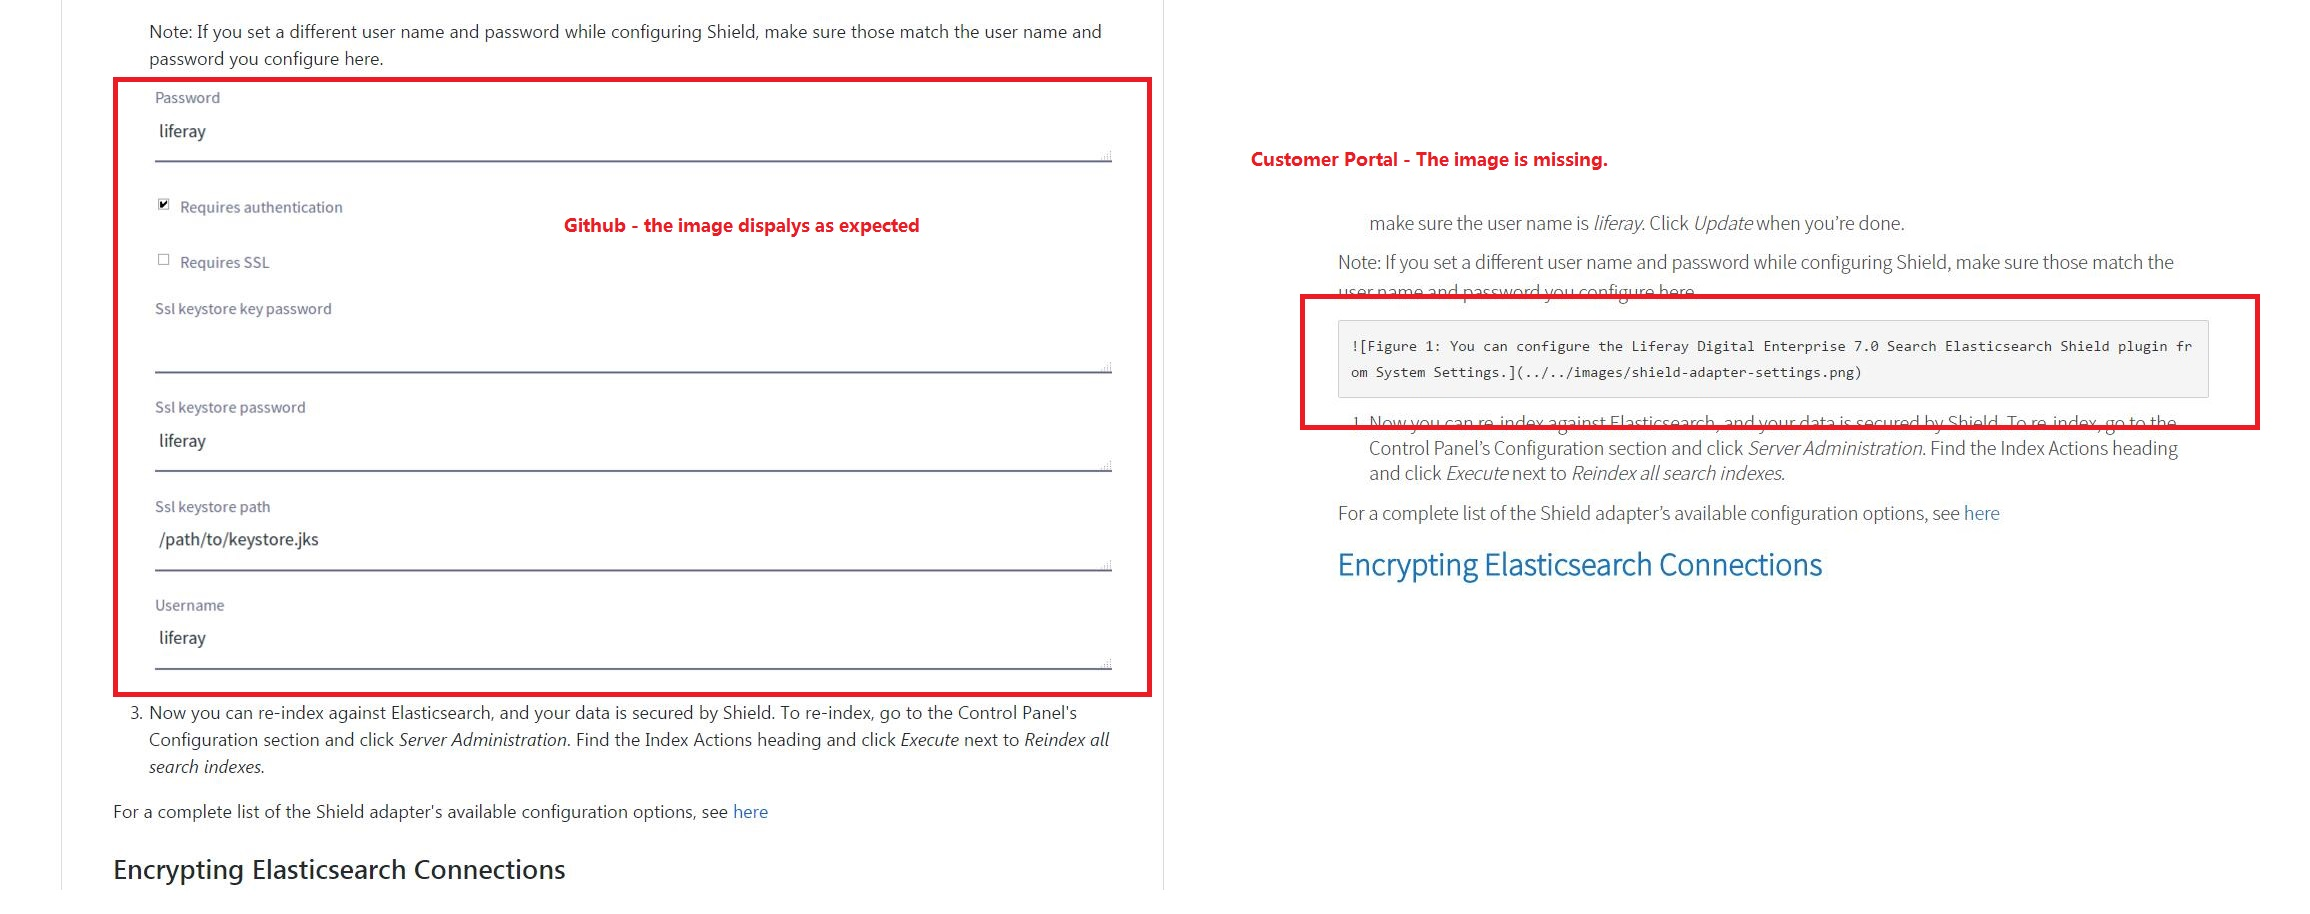 LRDOCS-3724] Figure 1 is missing from Securing Elasticsearch